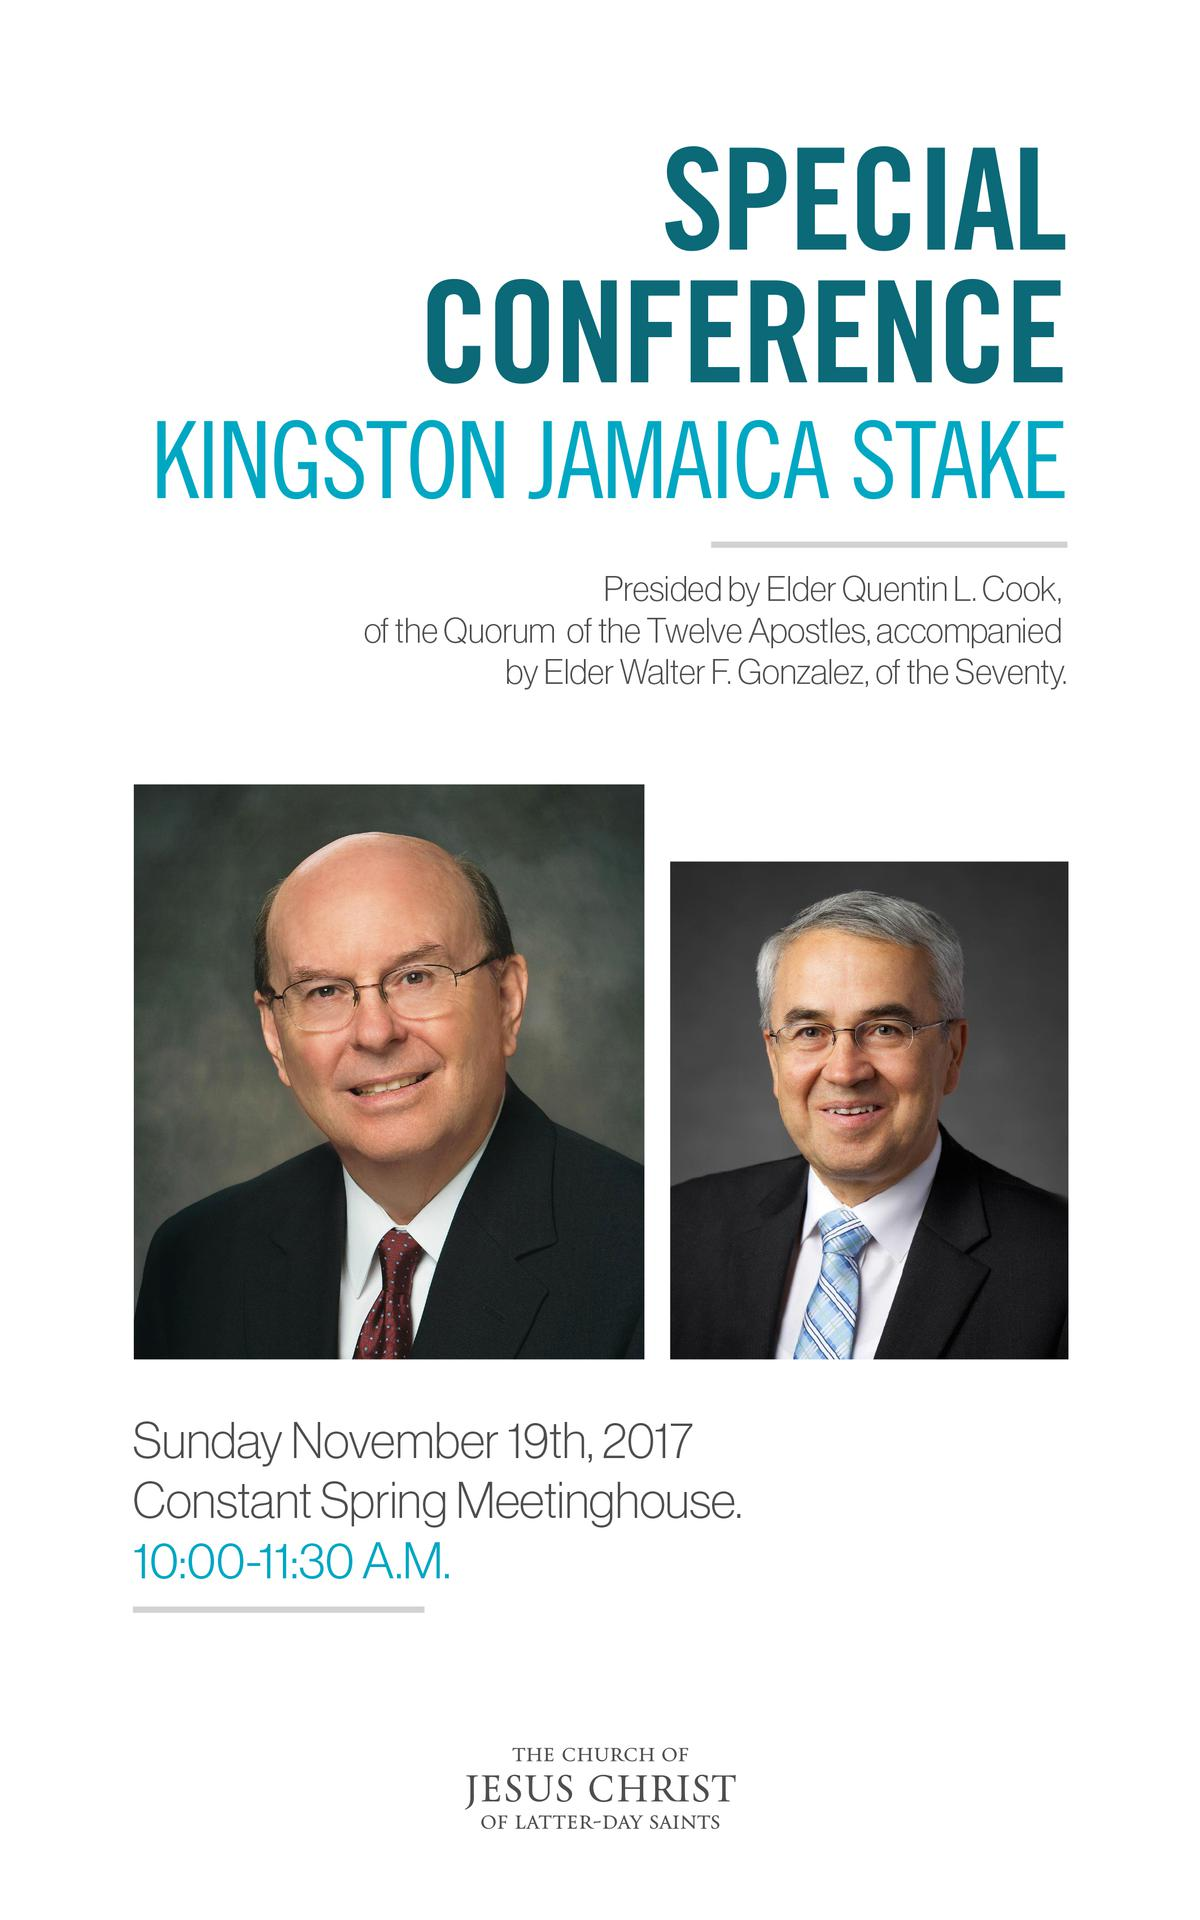 Special Conference Kingston Jamaica Stake